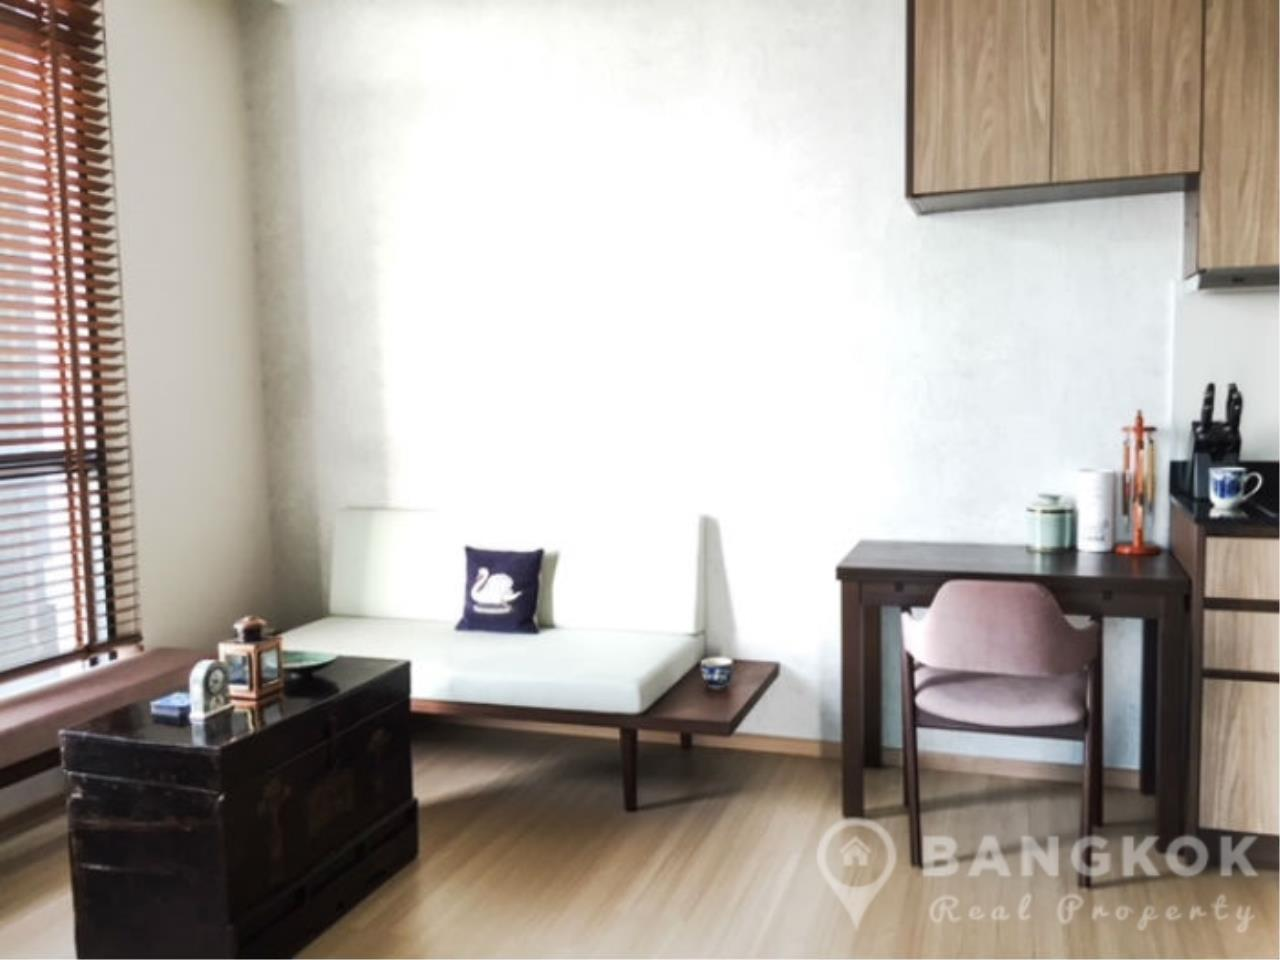 Bangkok Real Property Agency's The Capital Ekamai – Thonglor | Modern 1 Bed with Study (1+1) 1 Bath  3